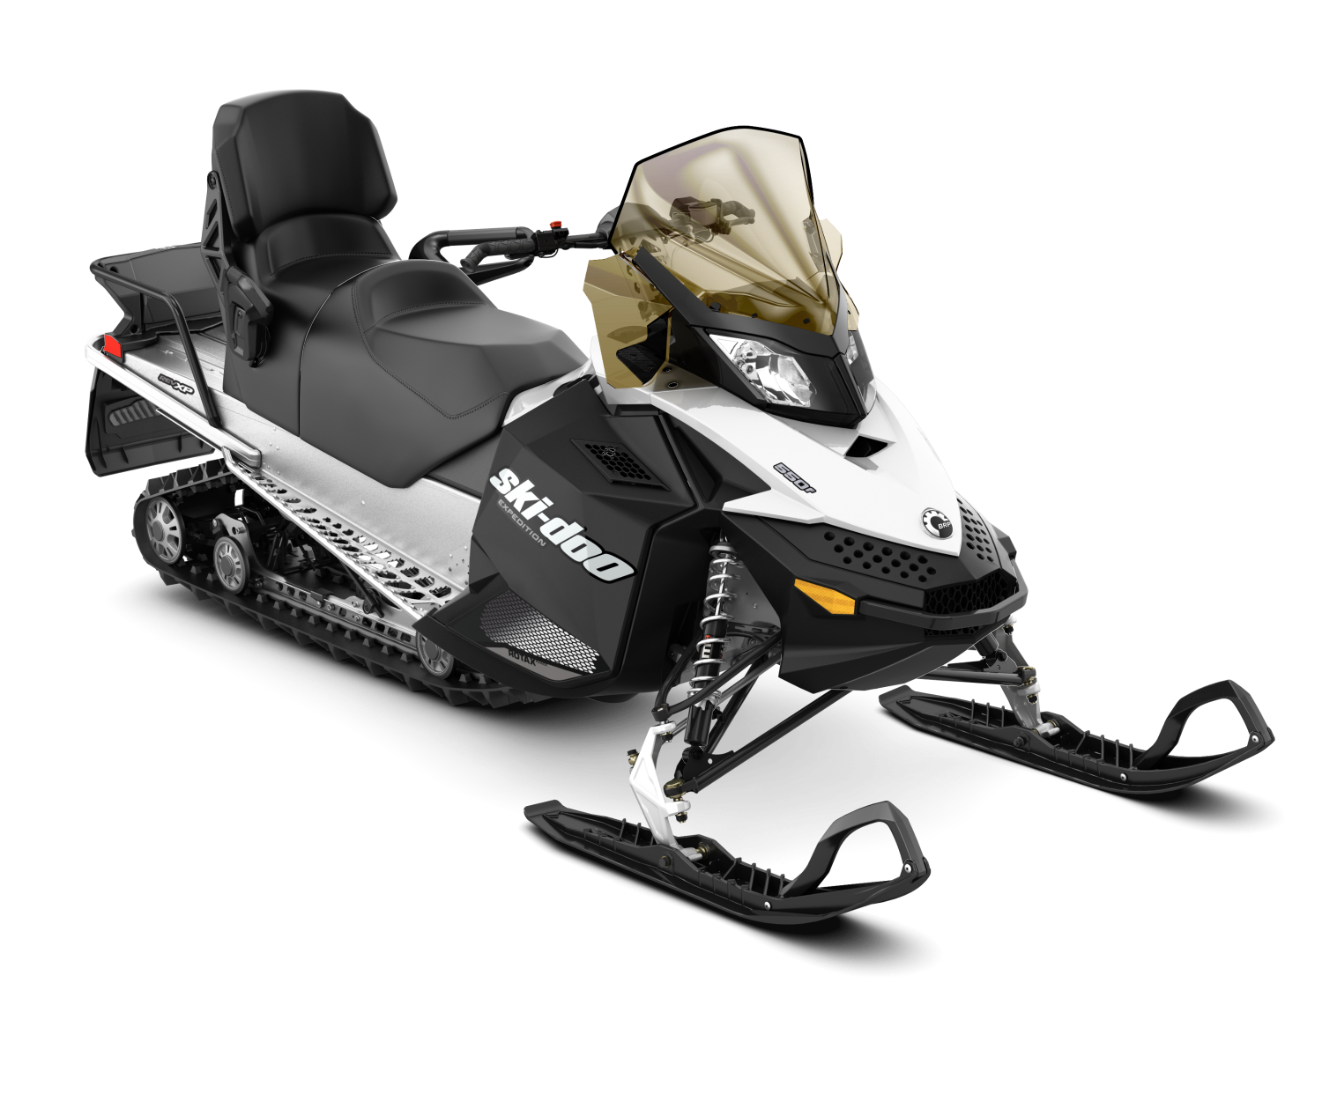 2018 Ski-Doo Expedition Sport 550F in Wisconsin Rapids, Wisconsin